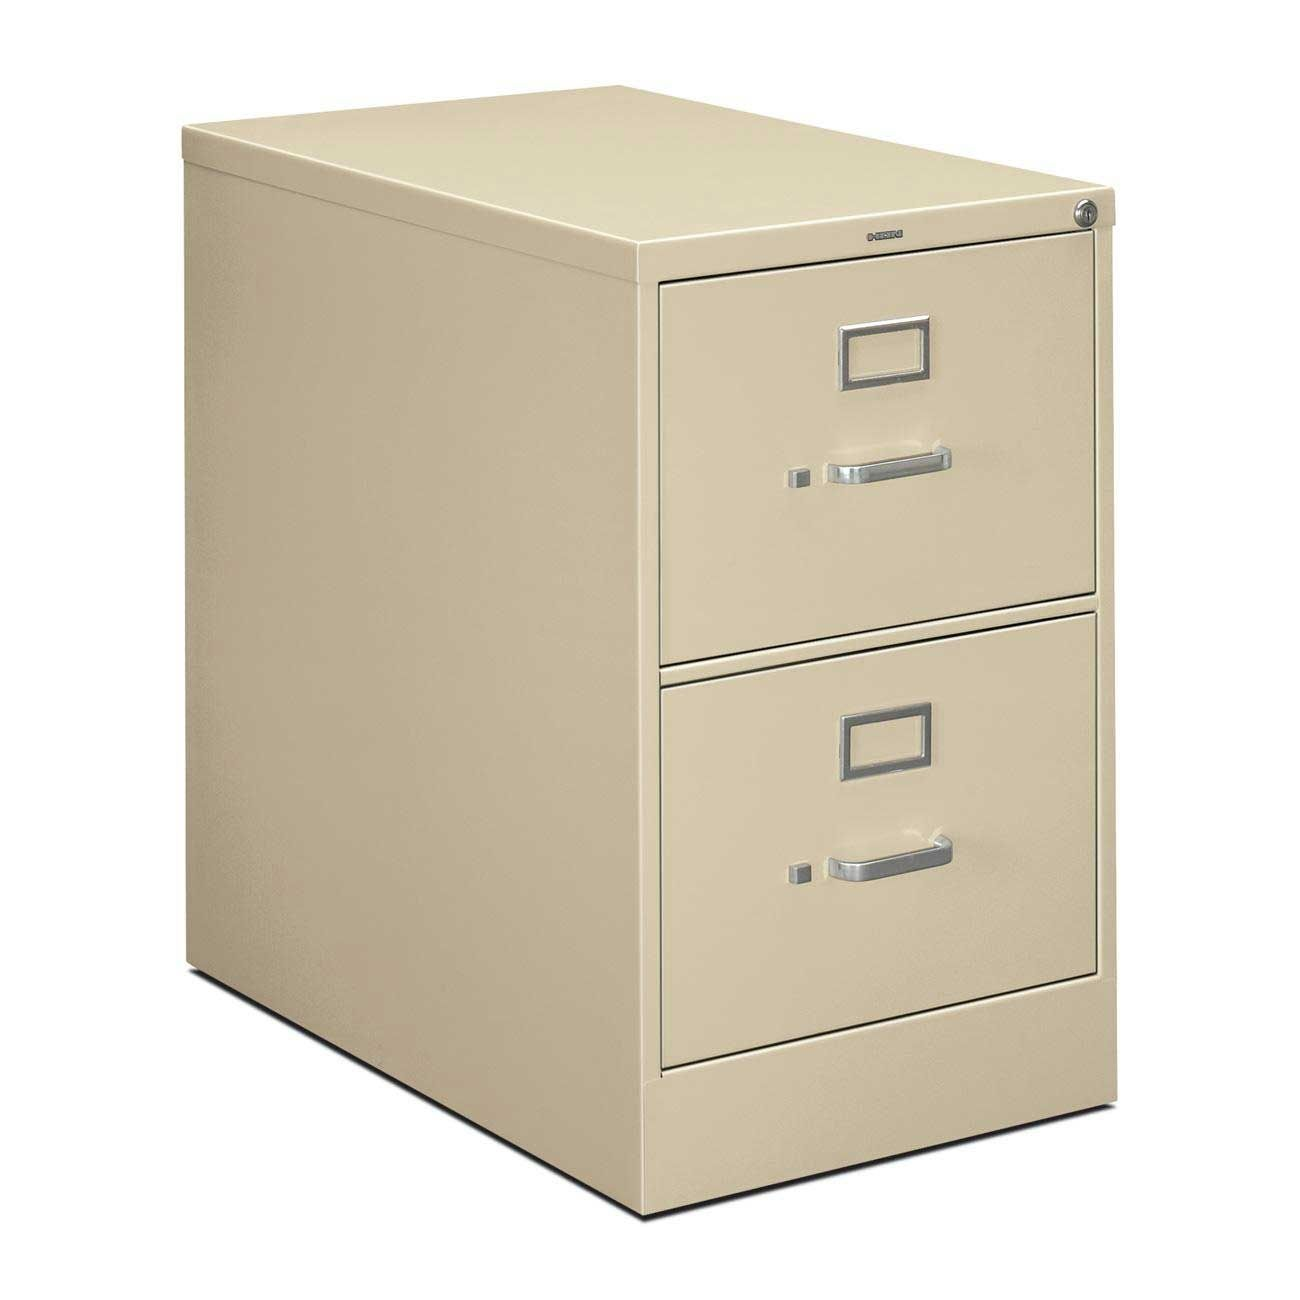 Two Drawer Metal File Cabinet Office Depot  sc 1 st  Pinterest & Two Drawer Metal File Cabinet Office Depot | http://ezserver.us ...